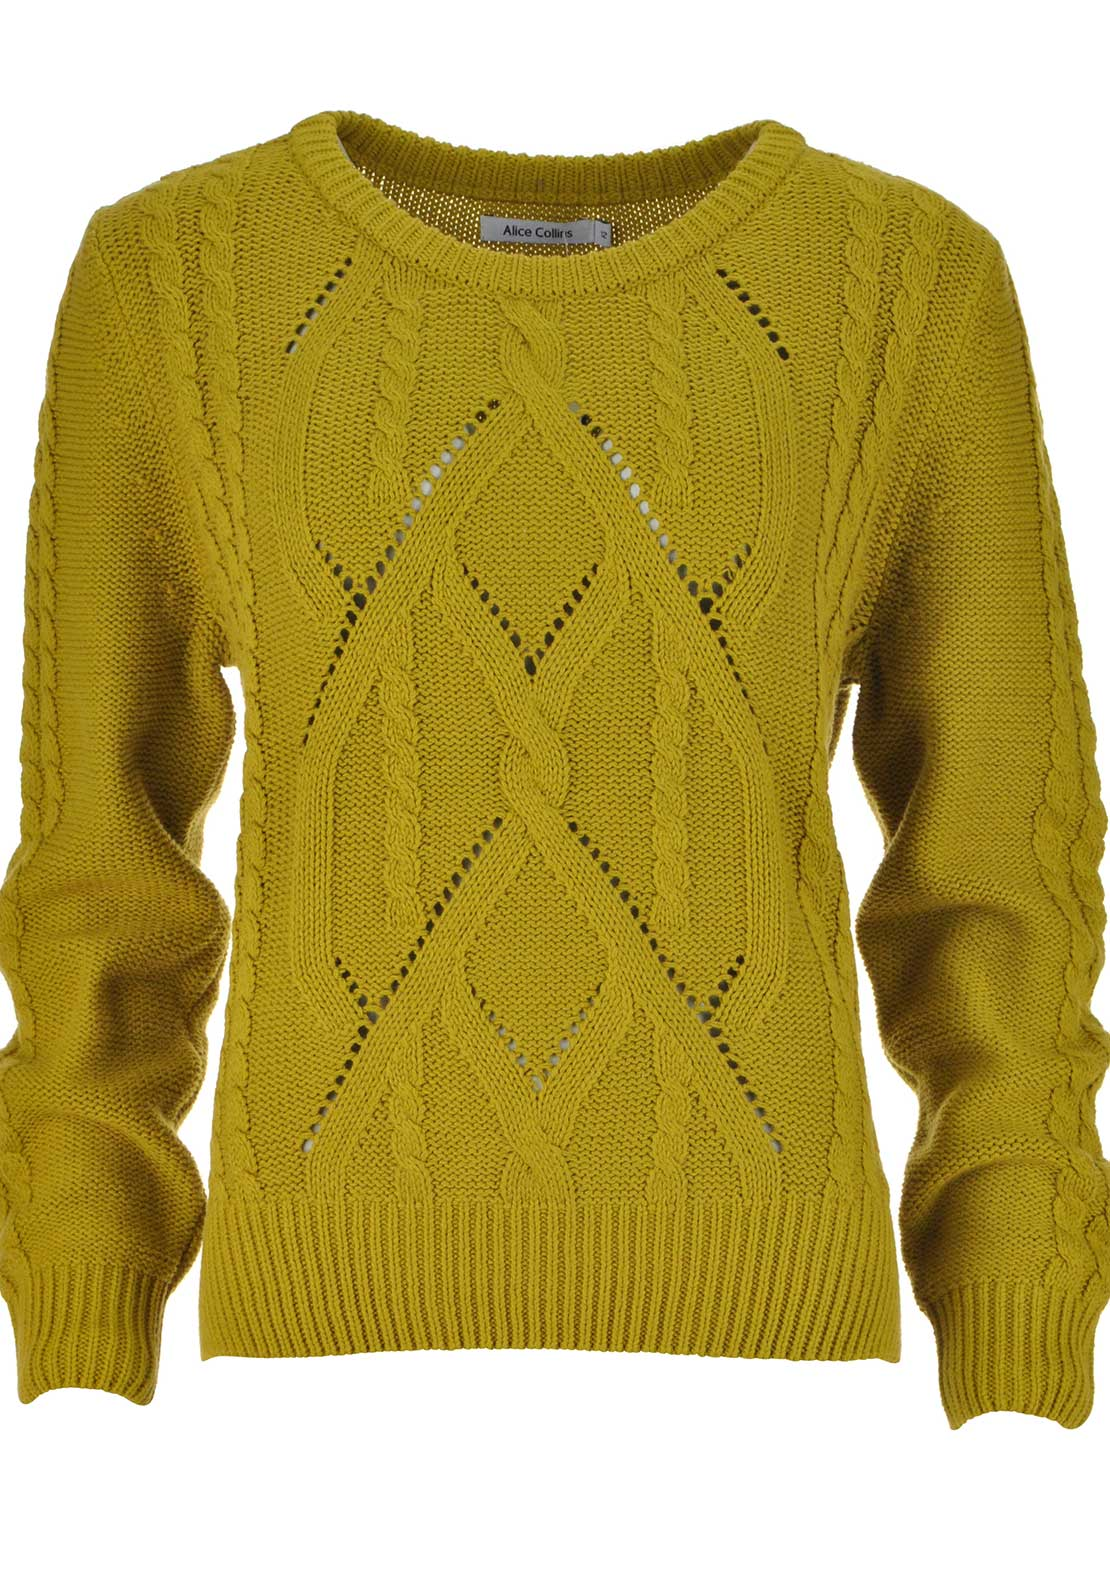 Alice Collins Cable Knit Chunky Knit Sweater Jumper, Mustard